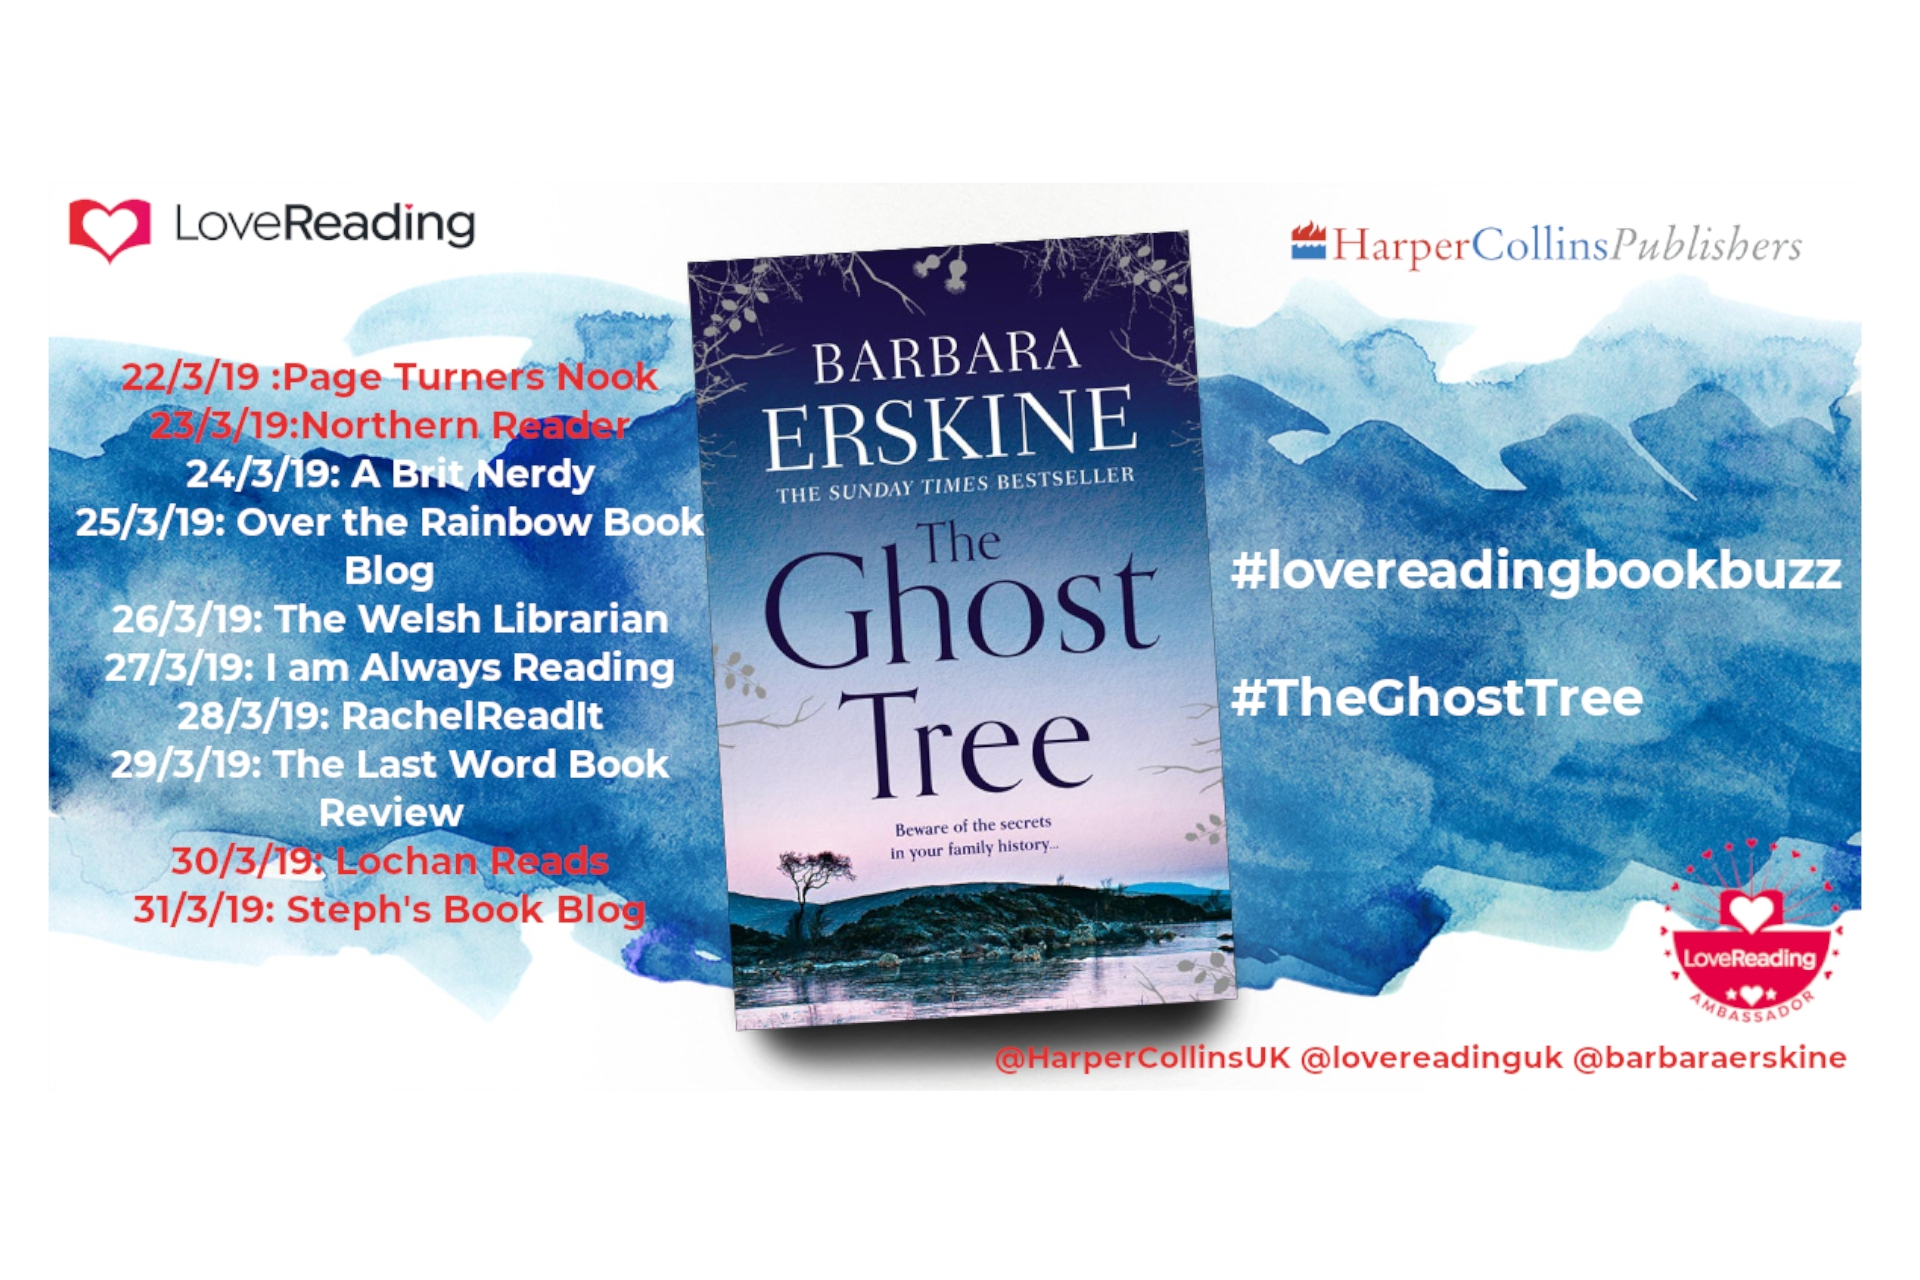 Ambassador Book Buzz: The Ghost Tree